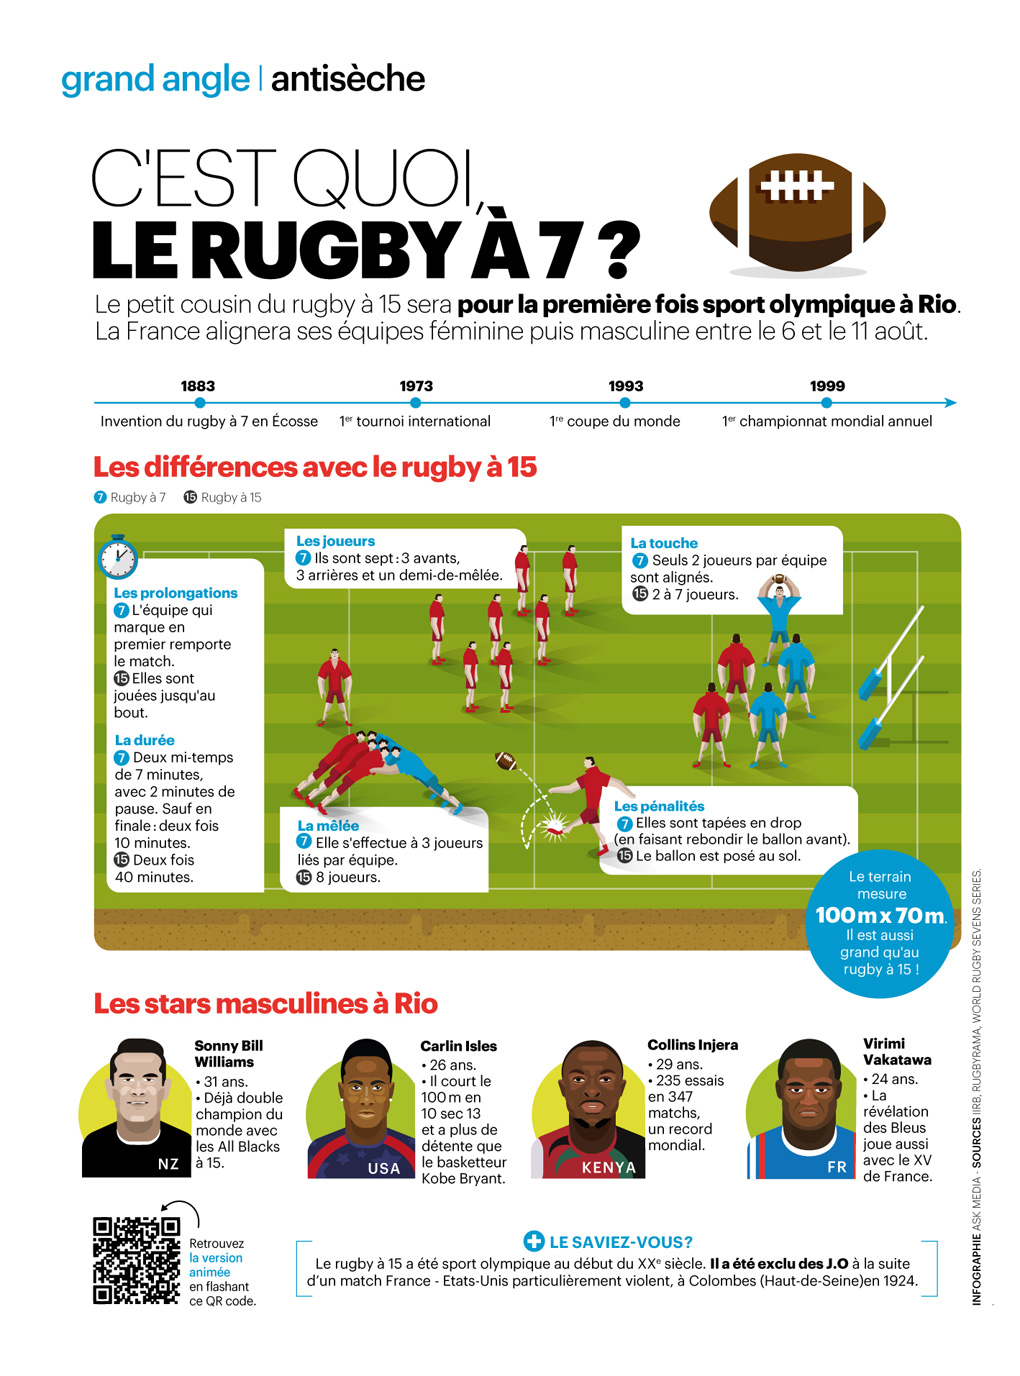 infographie_parisien_magazine_quoi-le-rugby-a-7_by_Cedric-AUDINOT